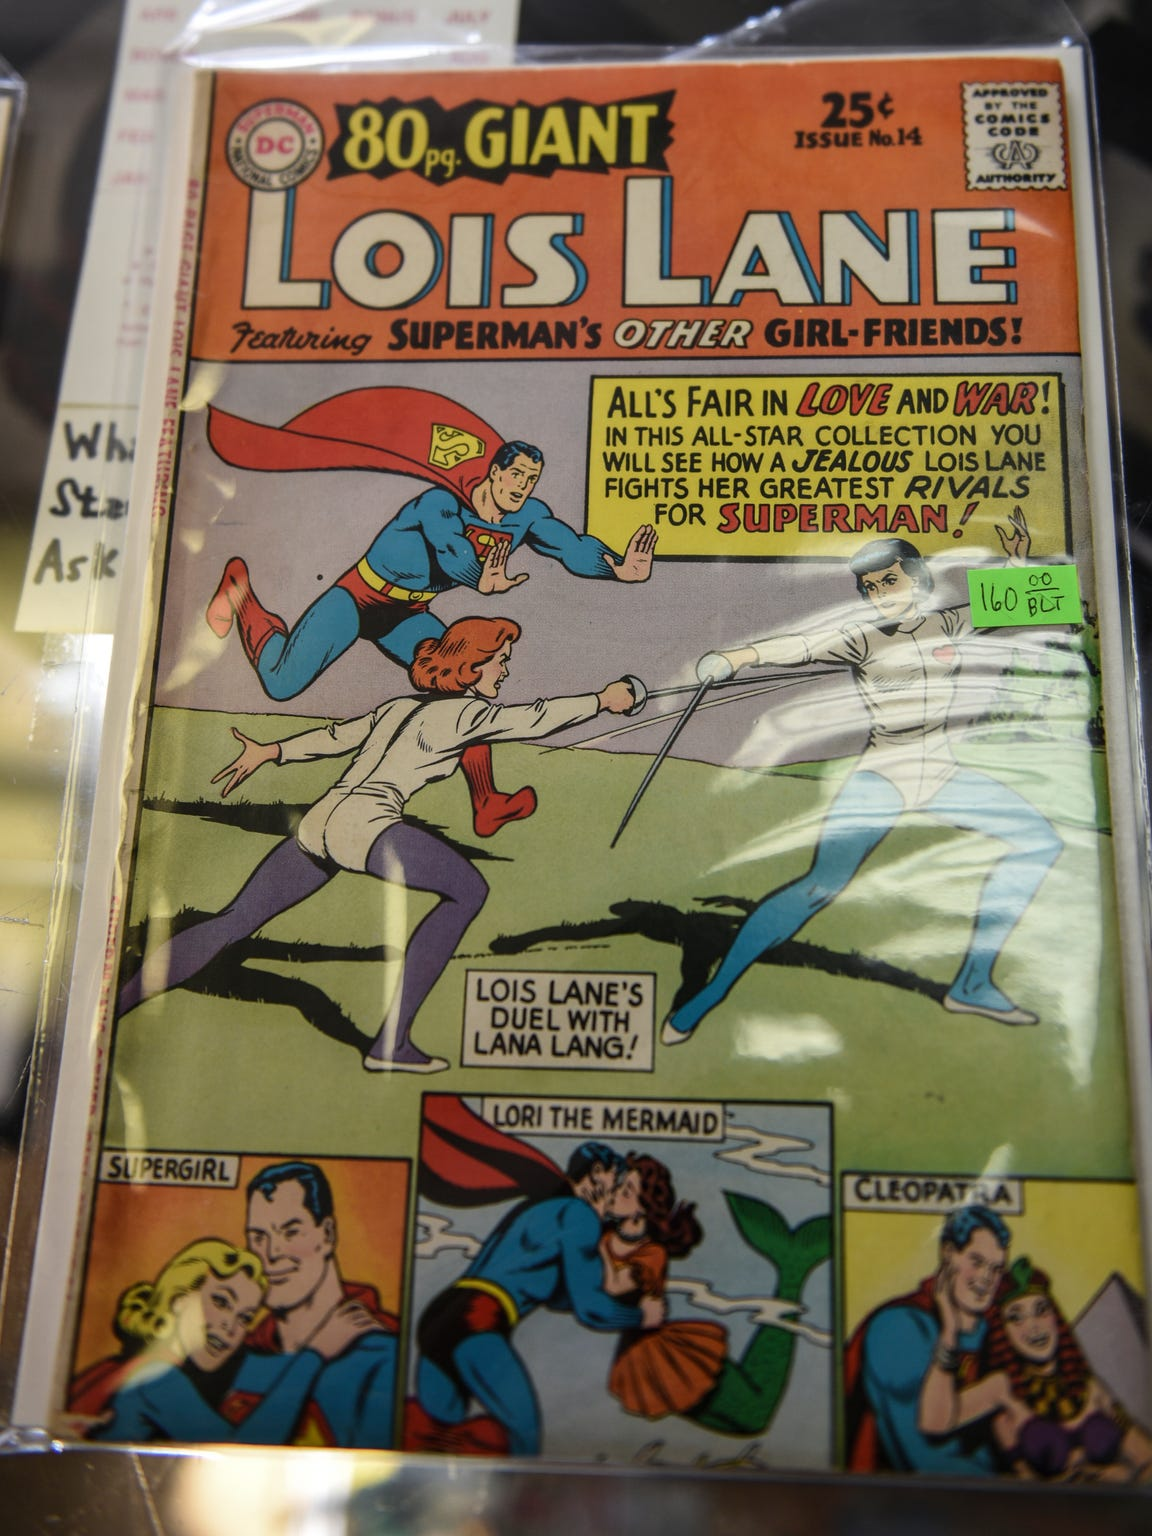 A giant comic book of Lois Lane at Comics and Paperbacks